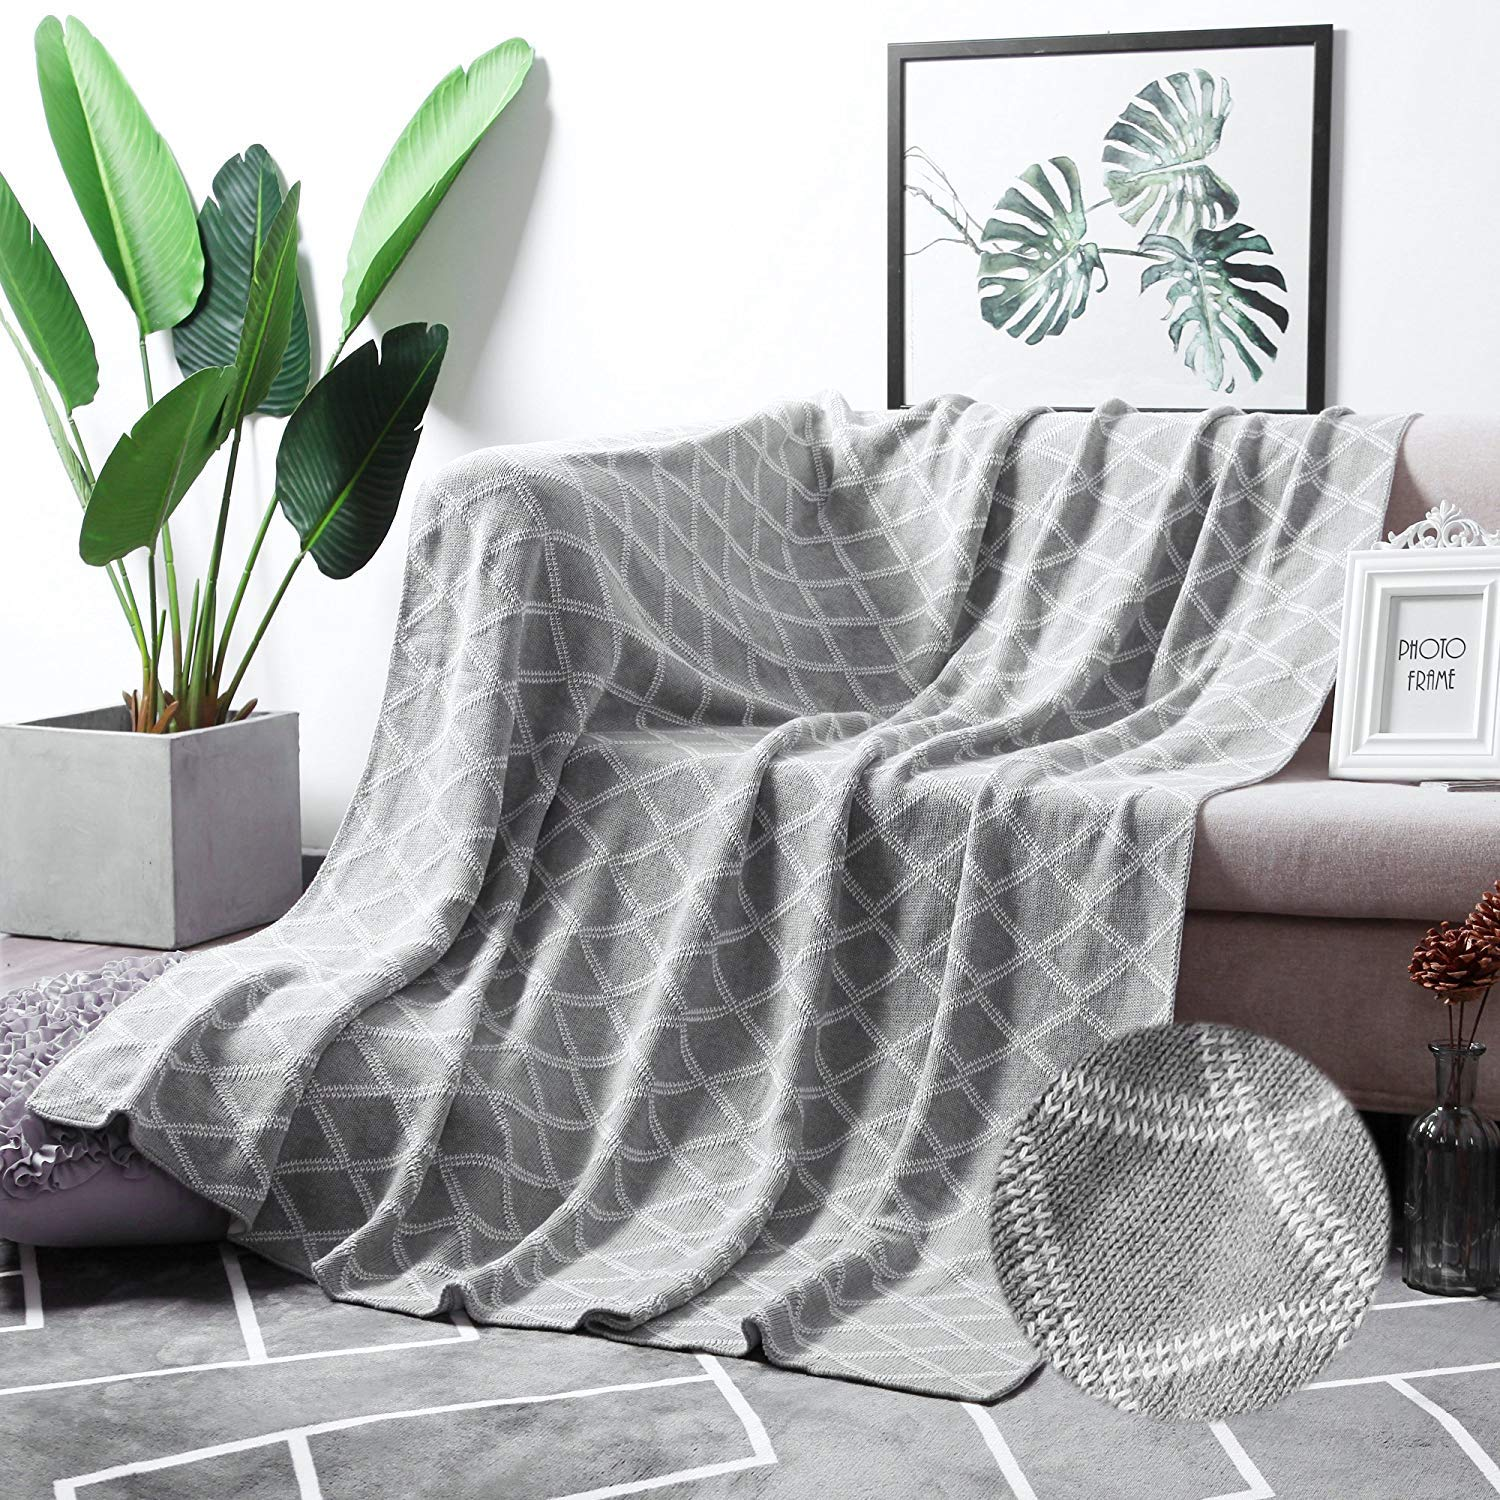 MoMA 100% Cotton Light Grey Cable Knit Throw Blanket for Couch Bed Sofa Chair, Gray White Stripe Reversible Decorative Knitted Blankets,51''x 63'' Size